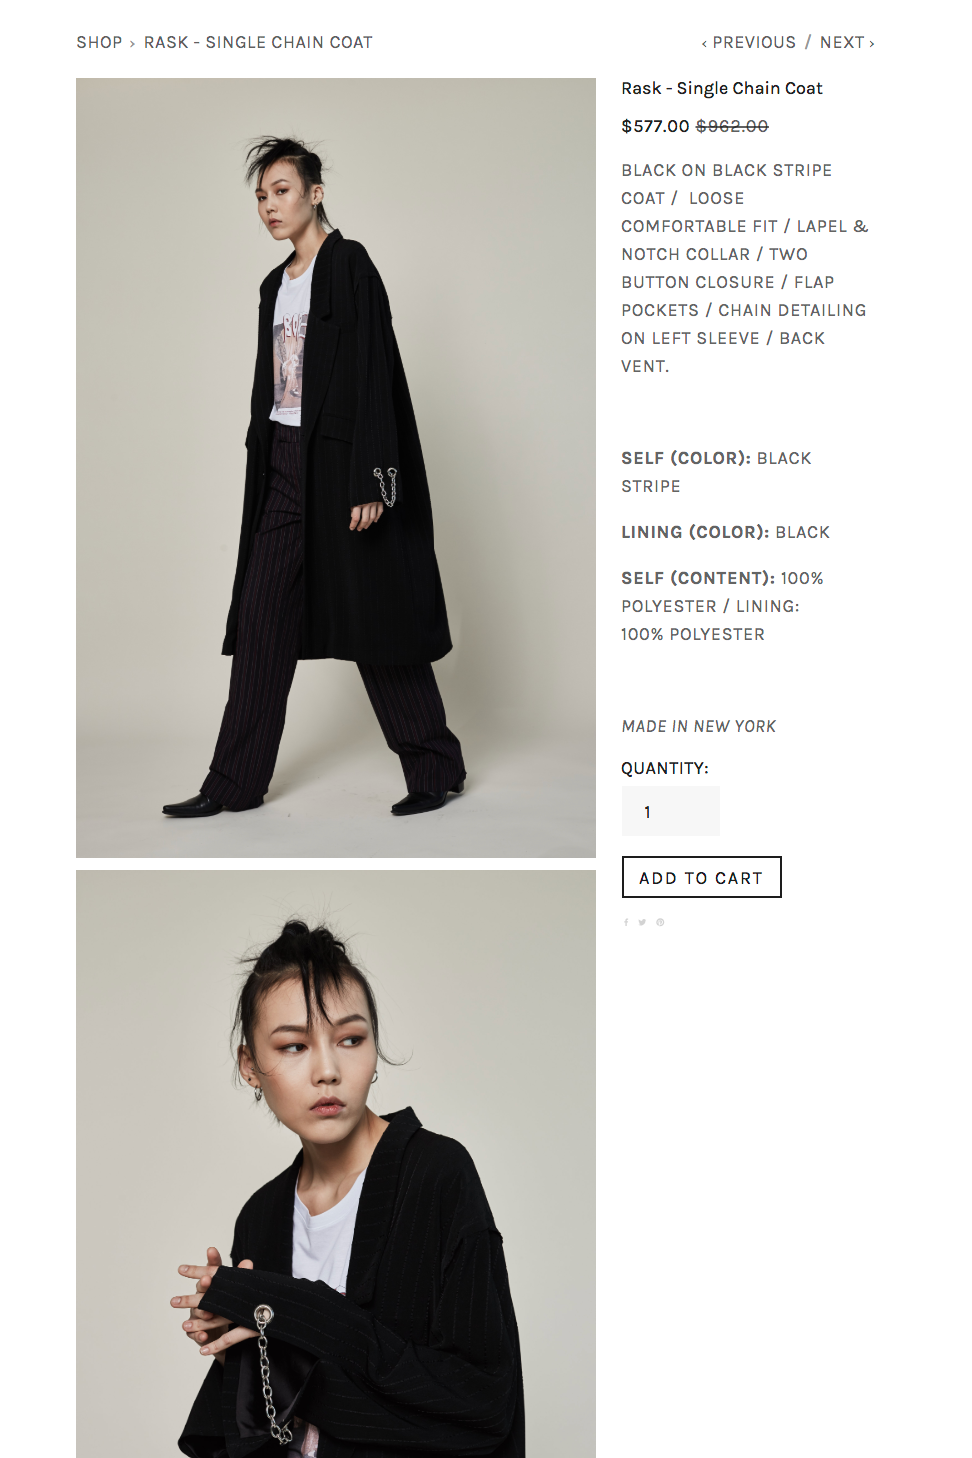 coalitionmarket.com  featuring   RASK   brand & their single chain coat from their Fall 2018 collection.